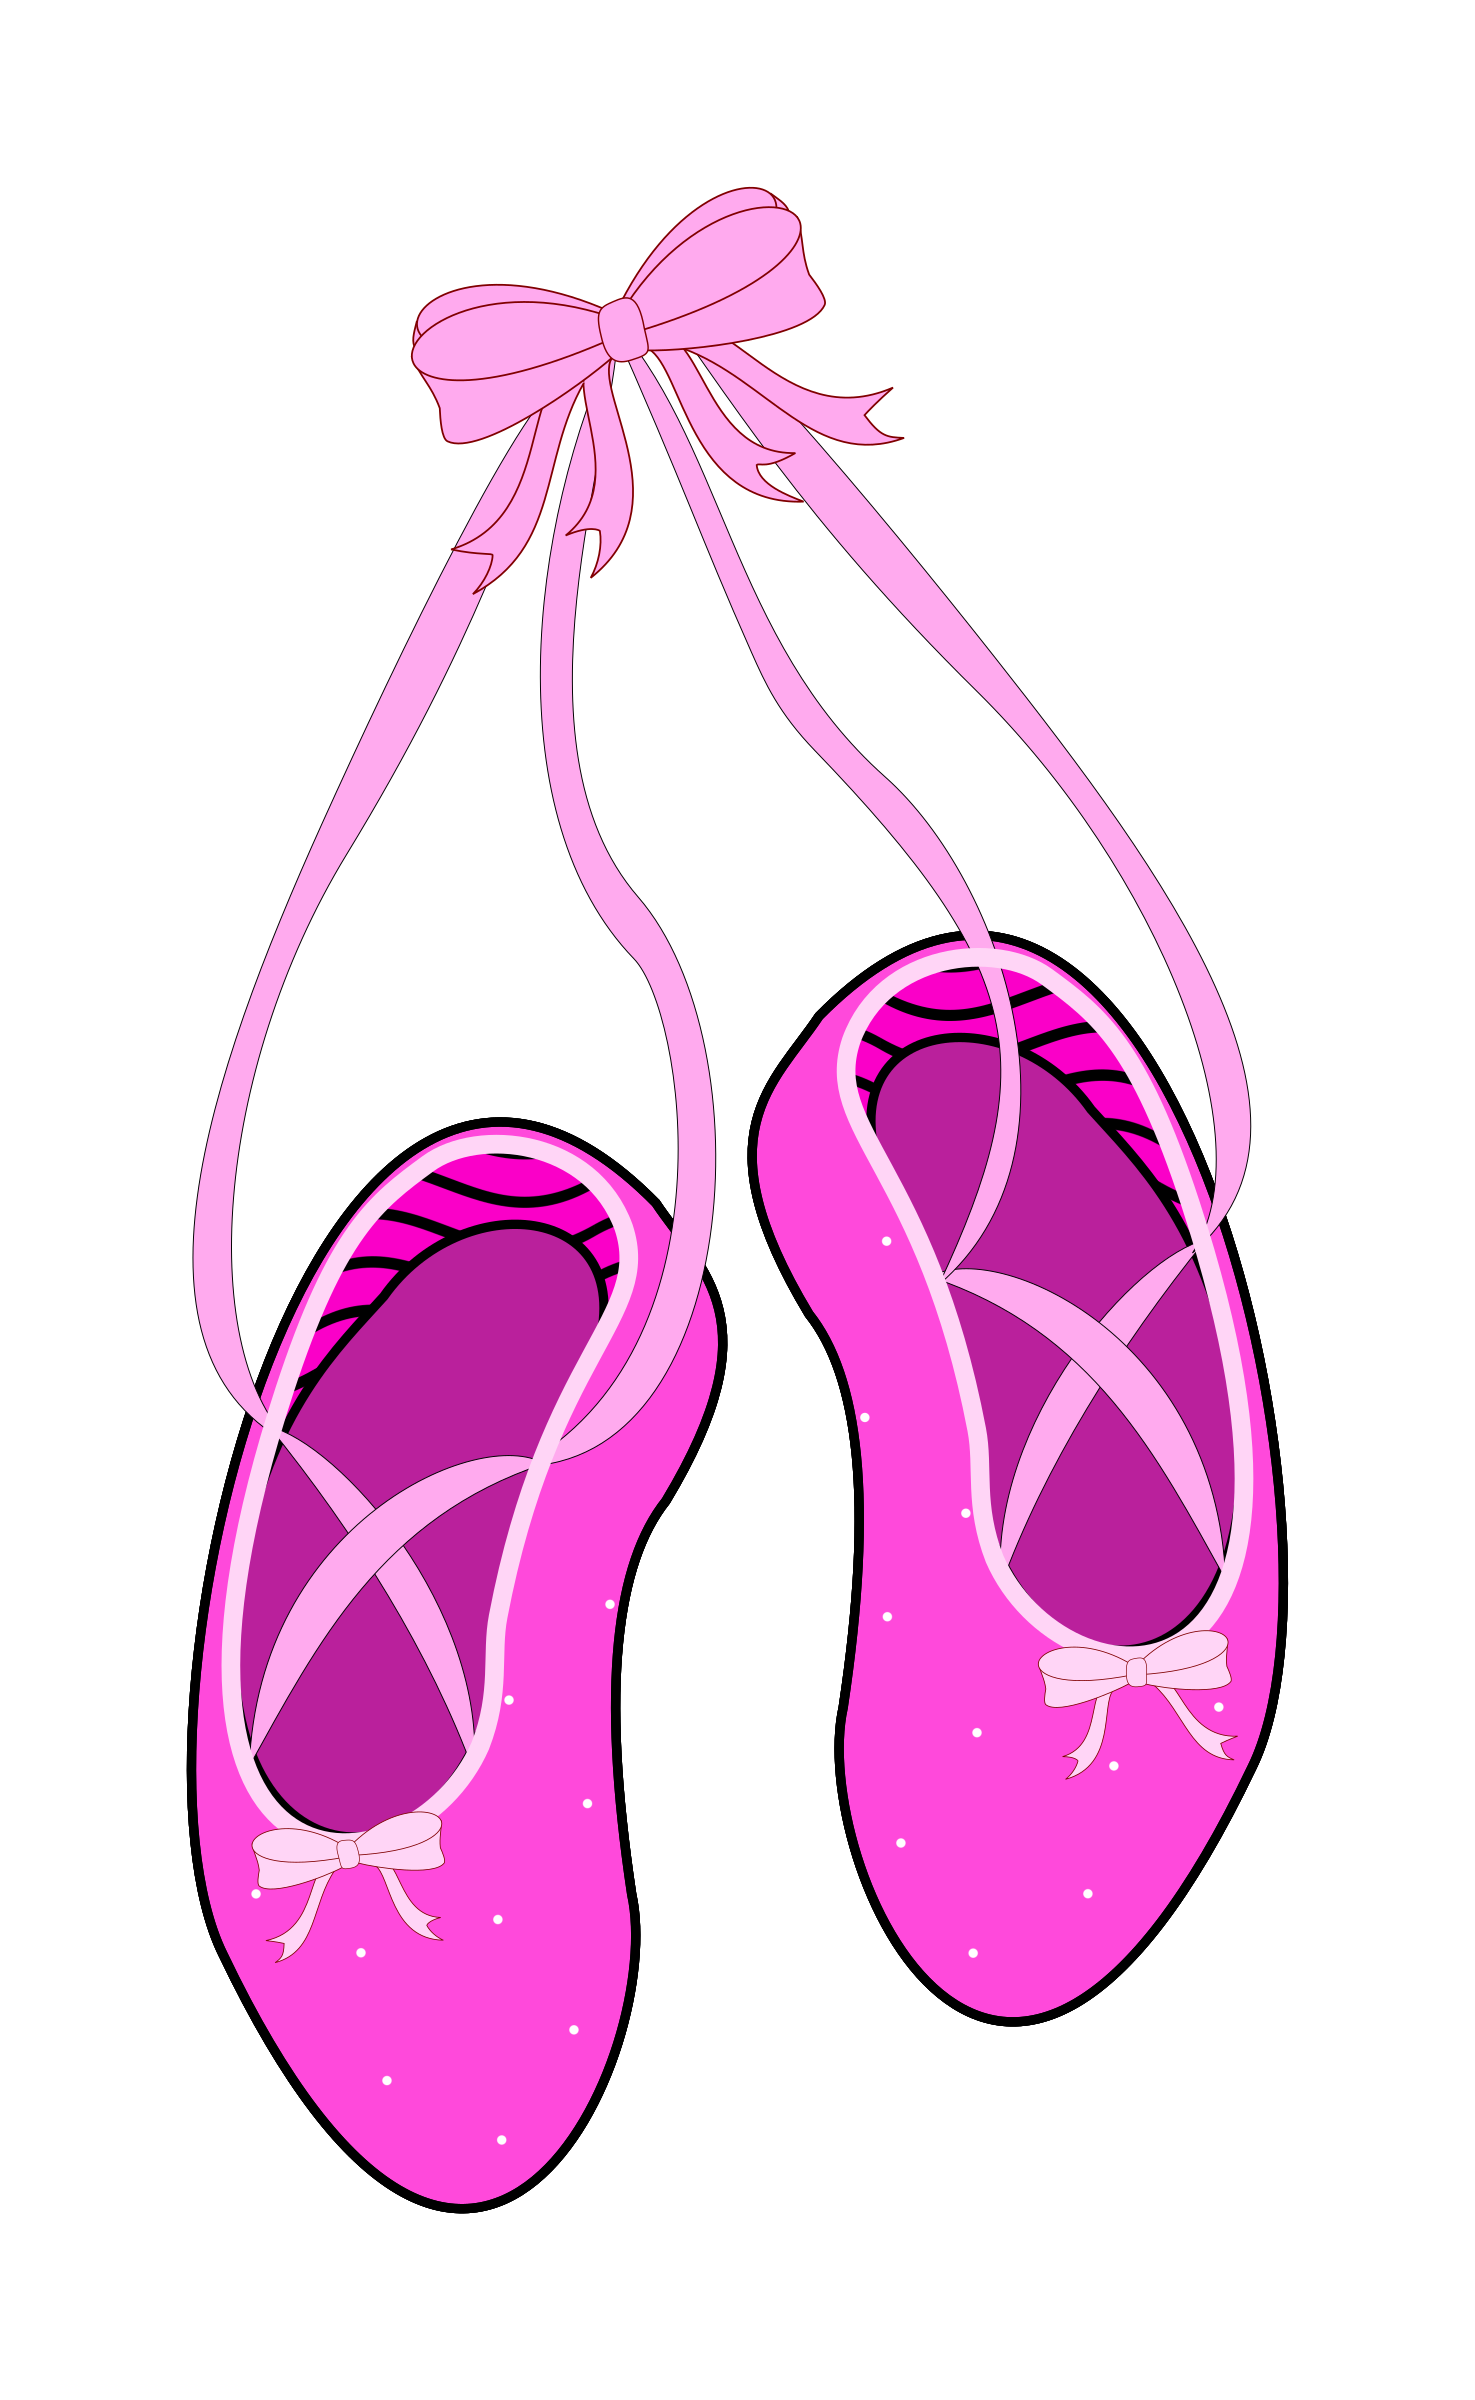 1475x2400 Incredible Decoration Ballet Dance Shoes Clipart Slippers